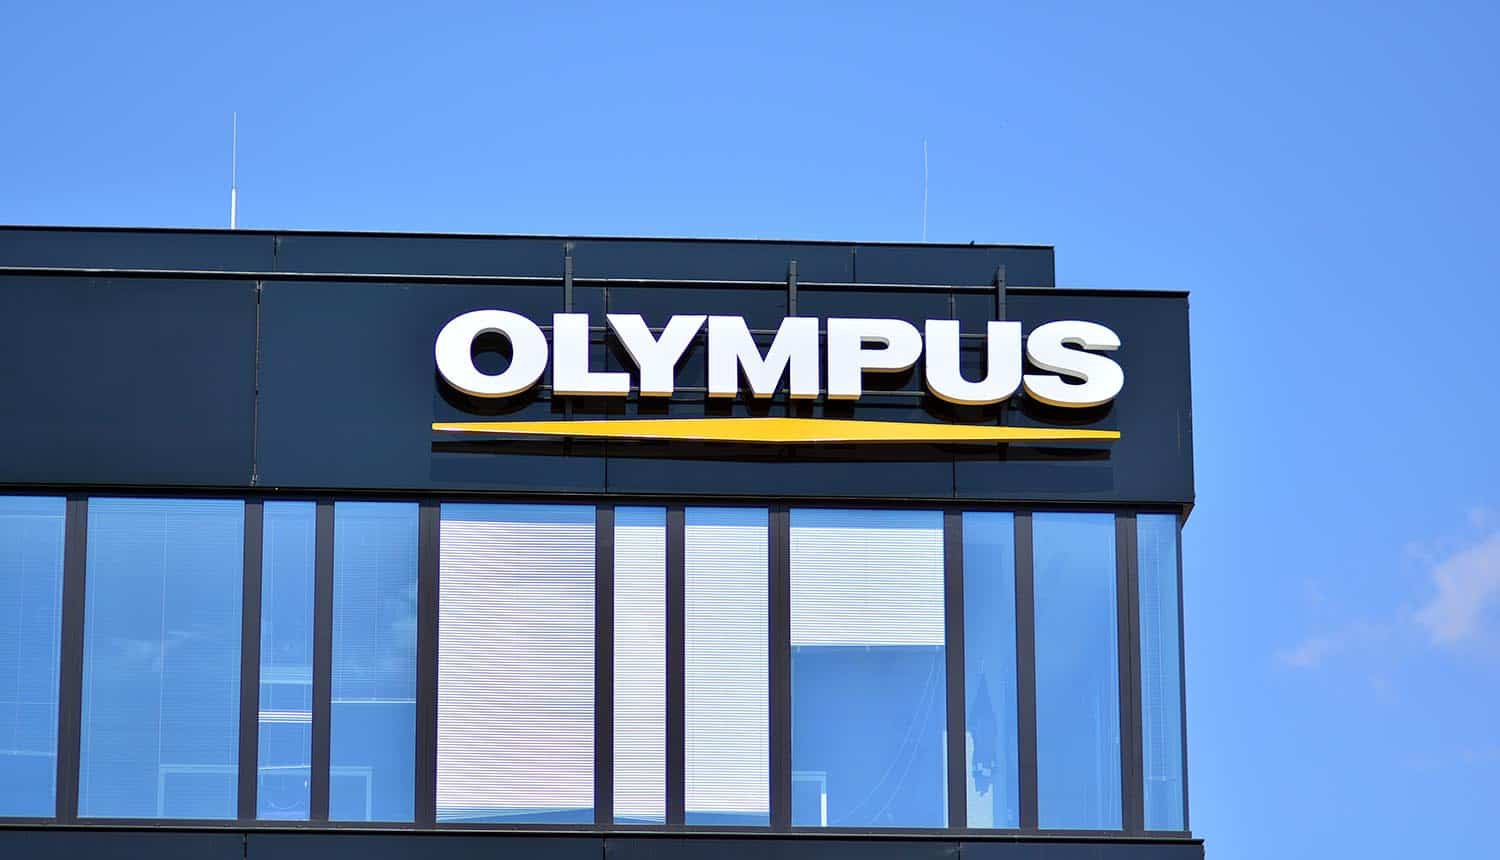 Company signboard Olympus on building showing ransomware attack